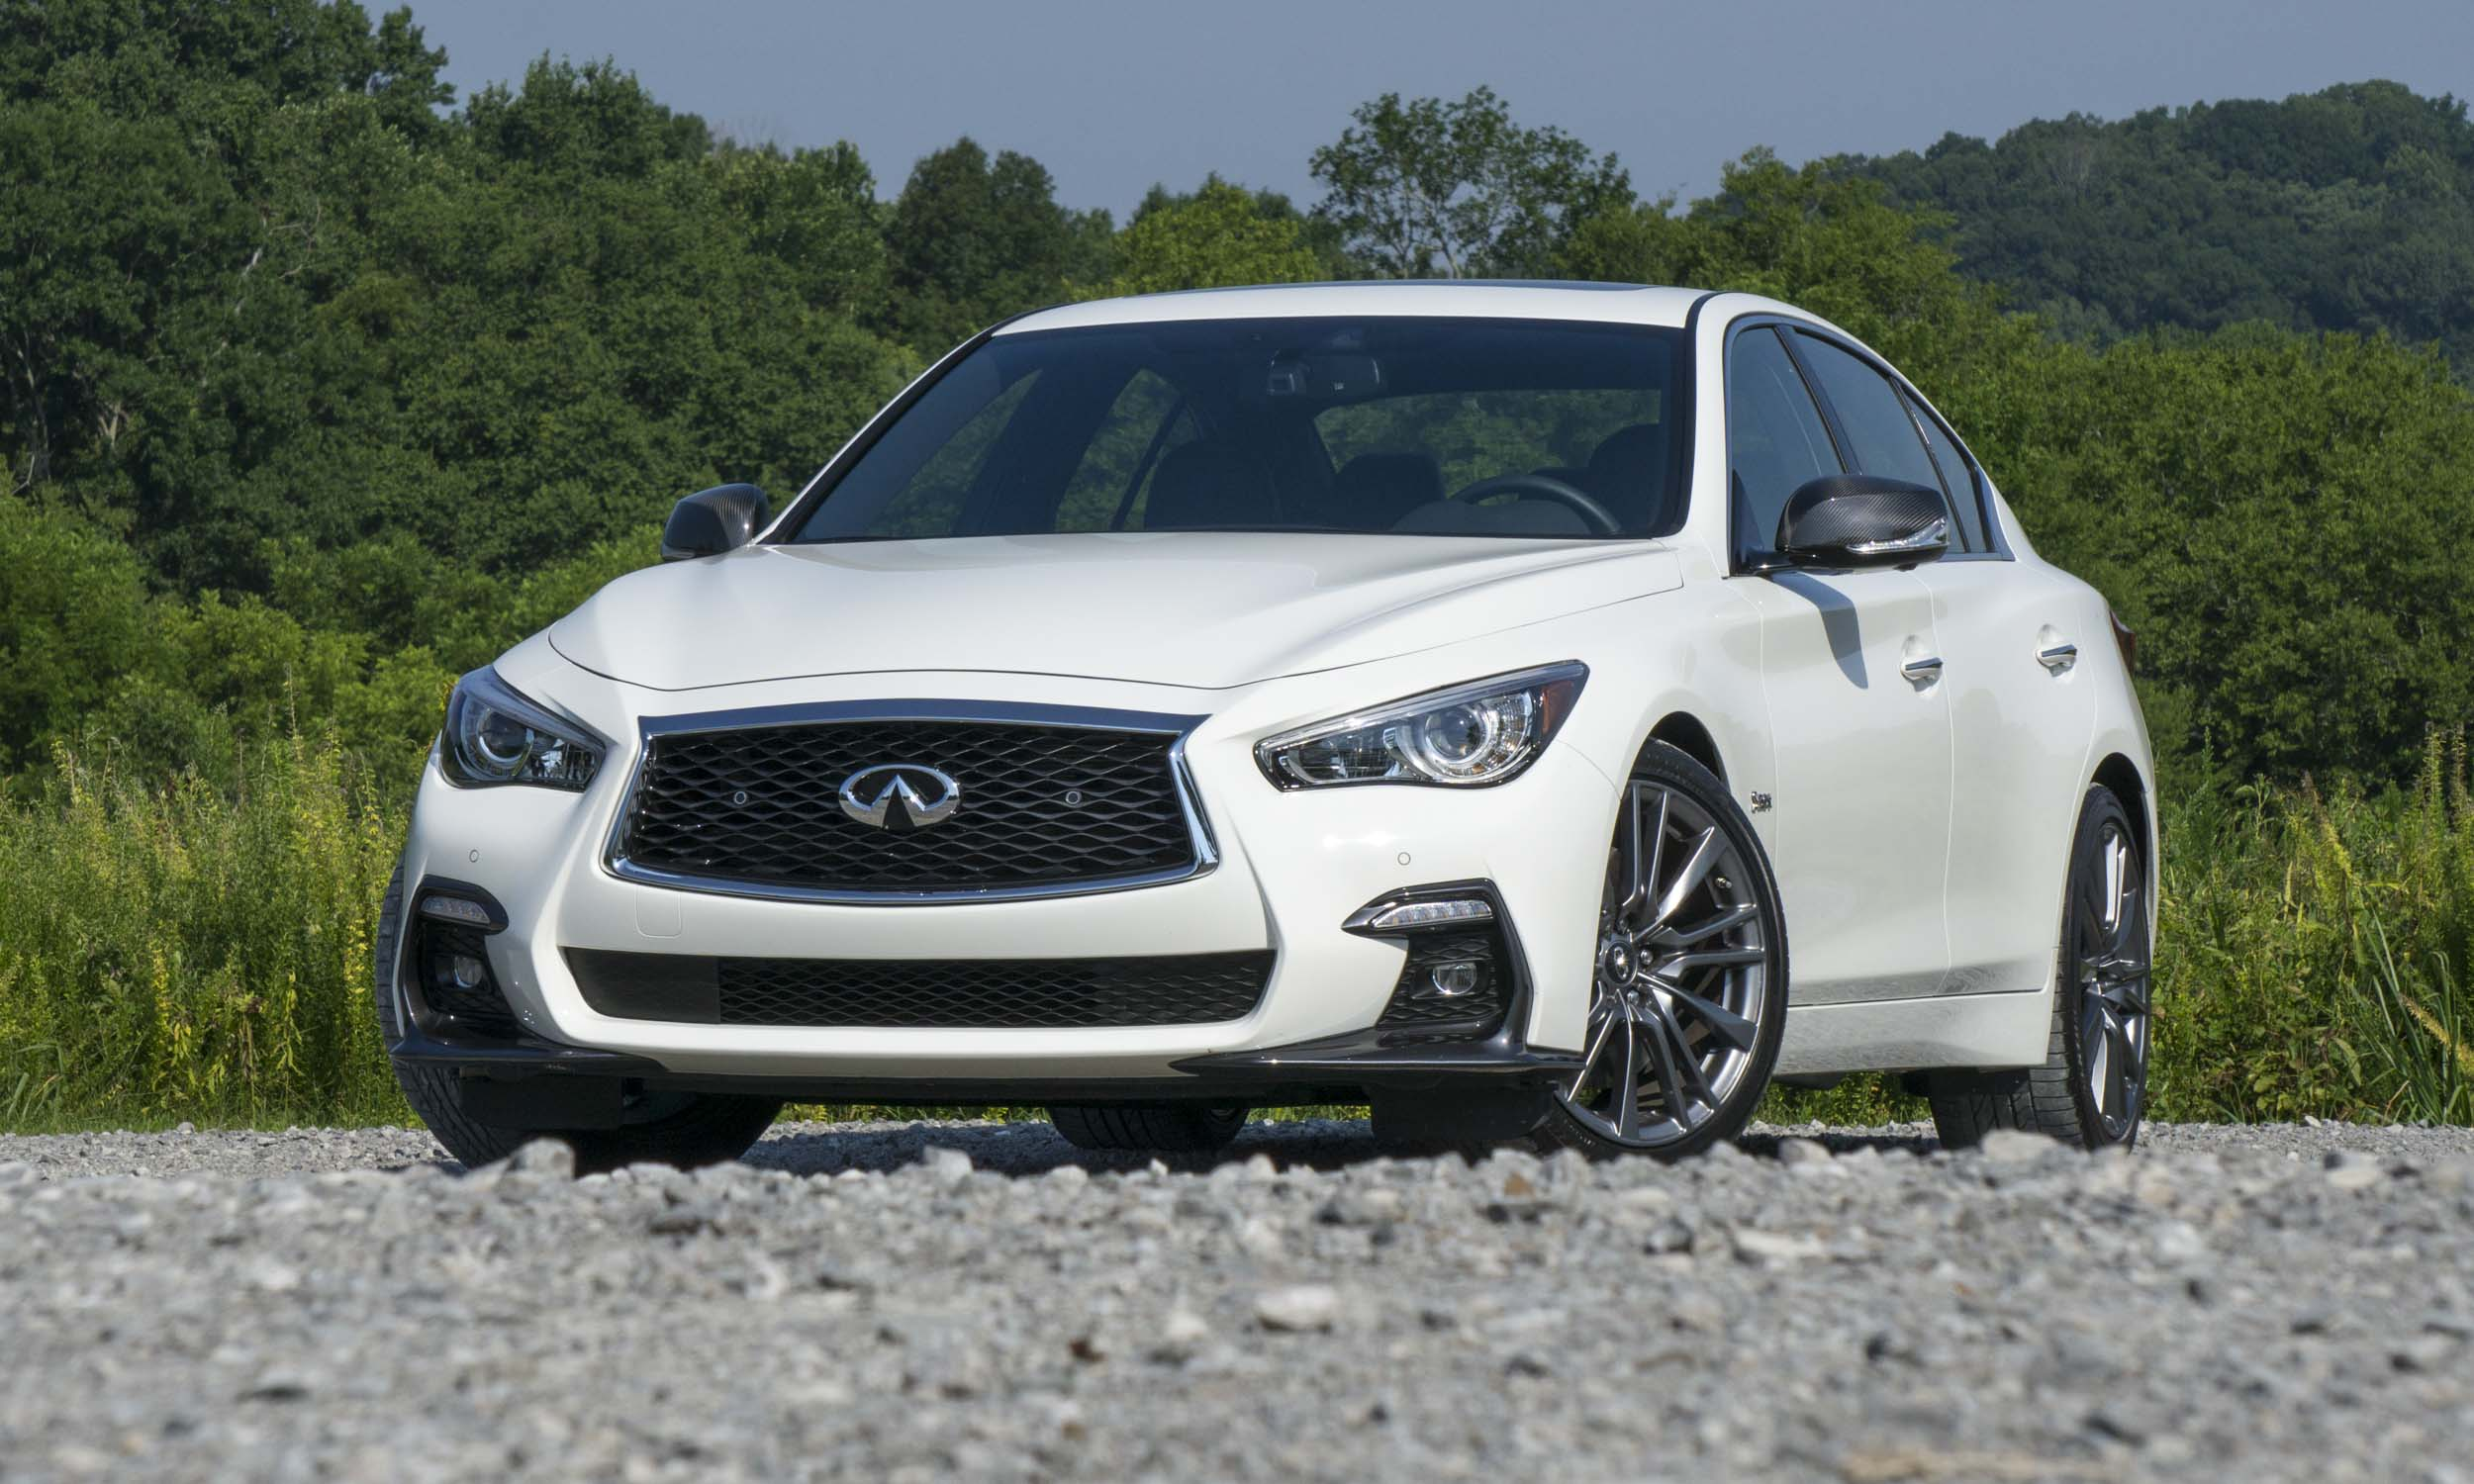 2018 infiniti q50. Interesting Q50 Perry Stern Automotive Content Experience To 2018 Infiniti Q50 V